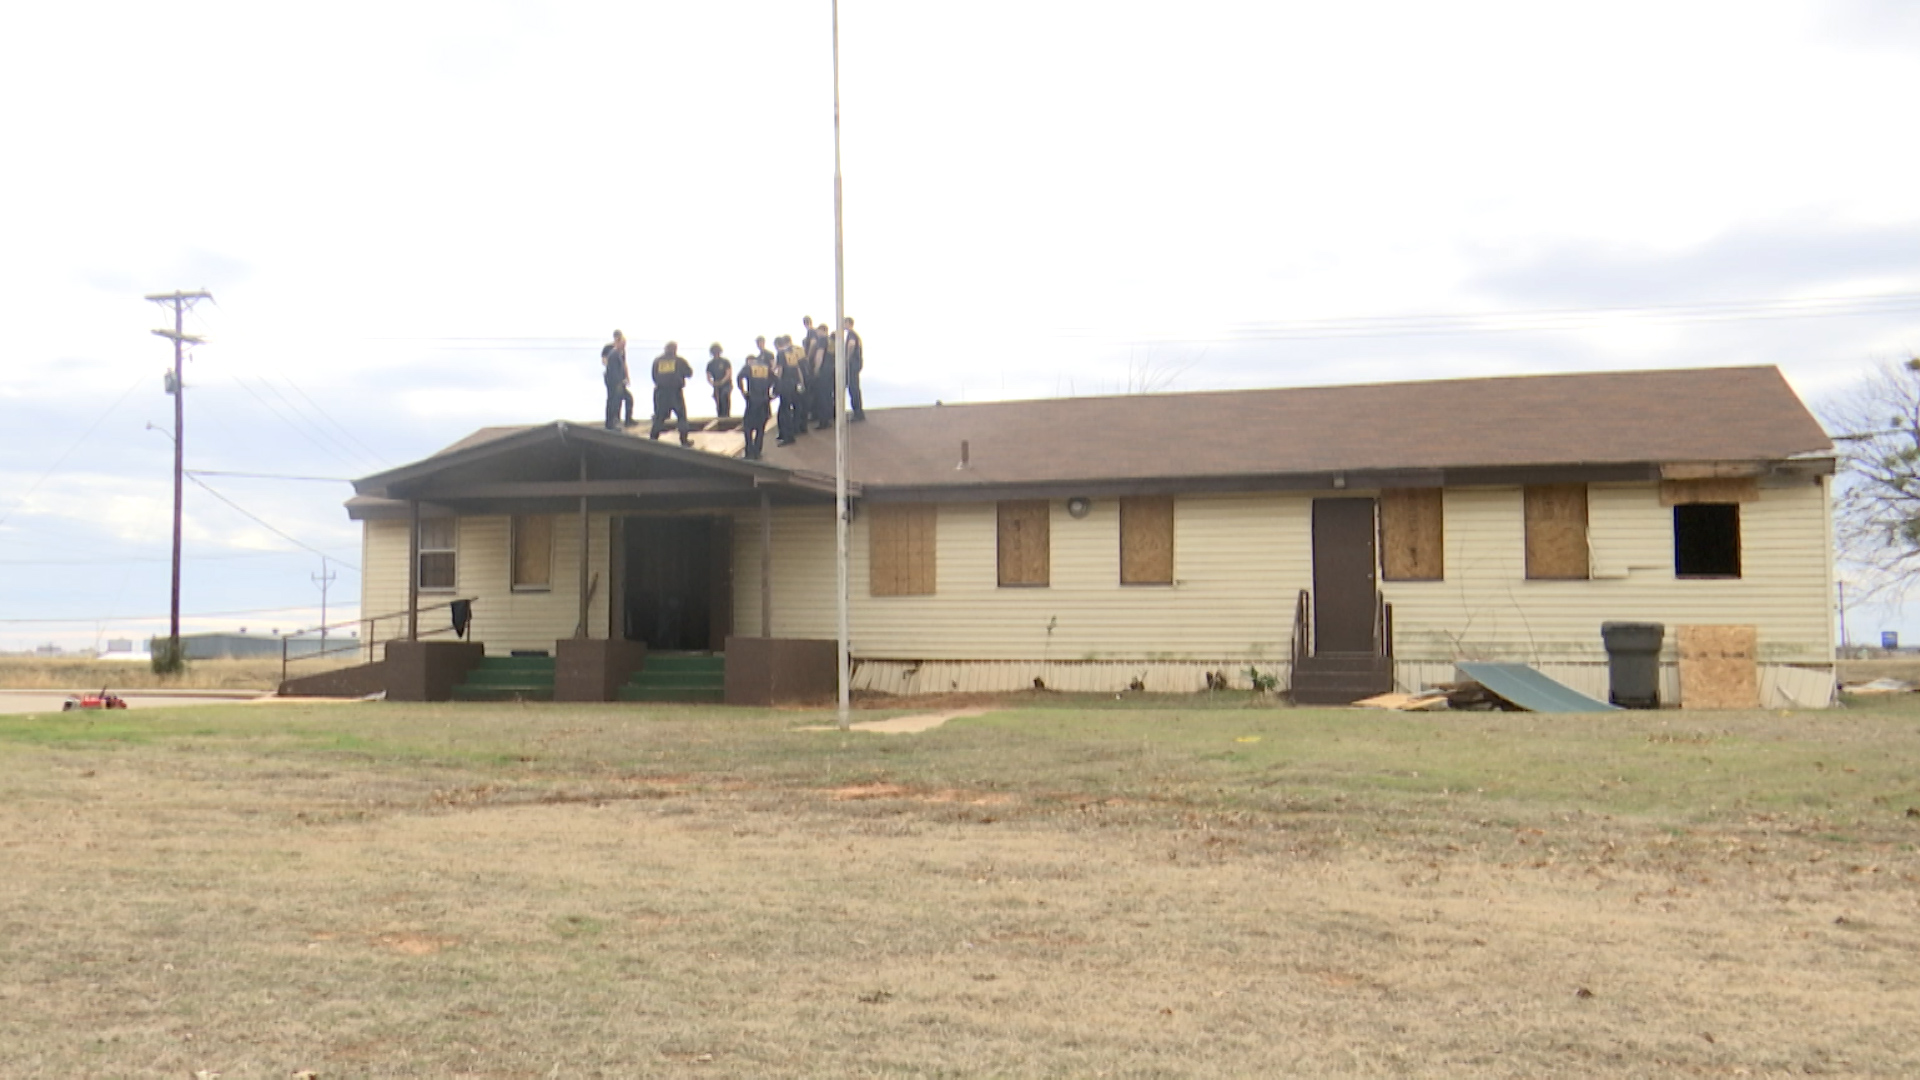 Wichita Falls city officials are killing two birds with one stone this week with a live burning training on the Lynwood Community Center.